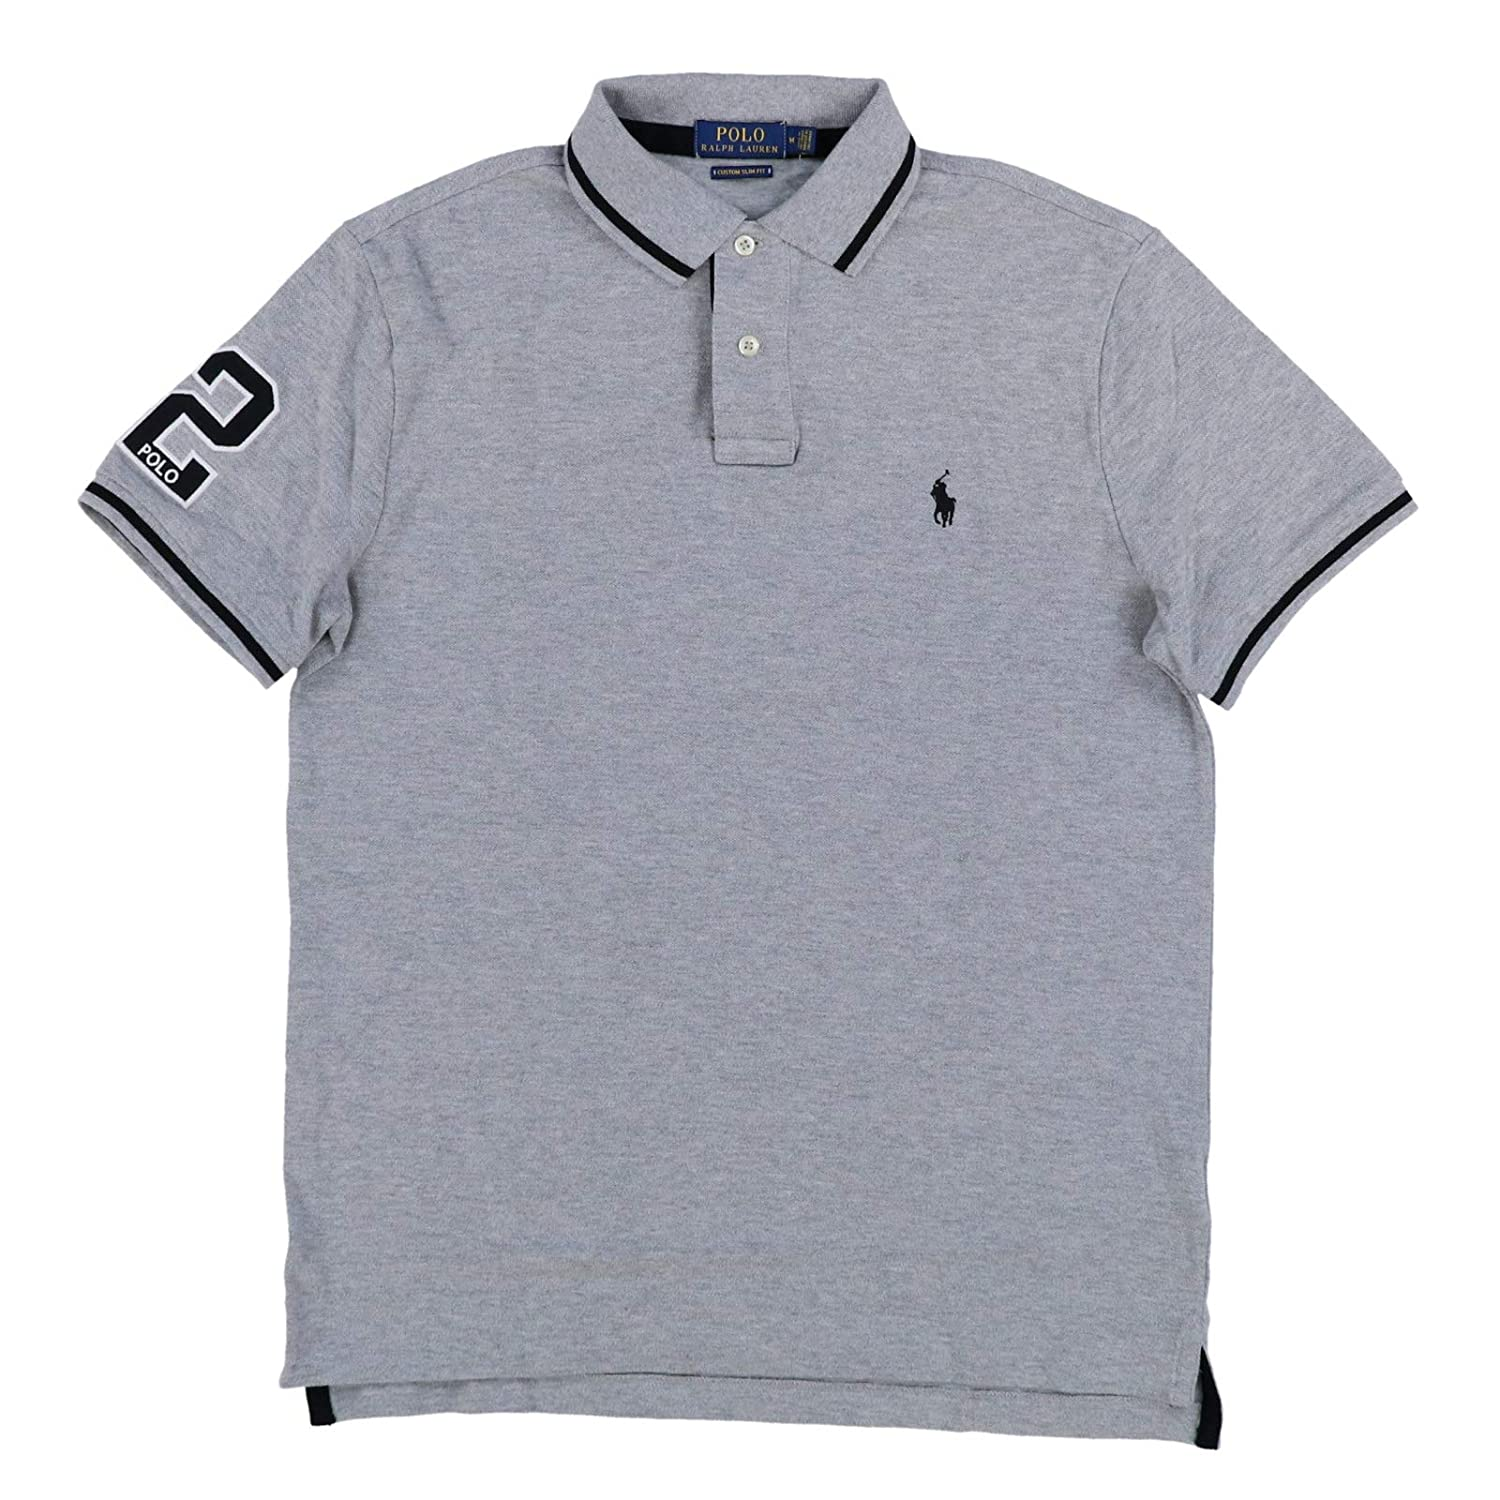 Polo Ralph Lauren Mens Custom Slim Fit Mesh Striped Collar Polo Shirt